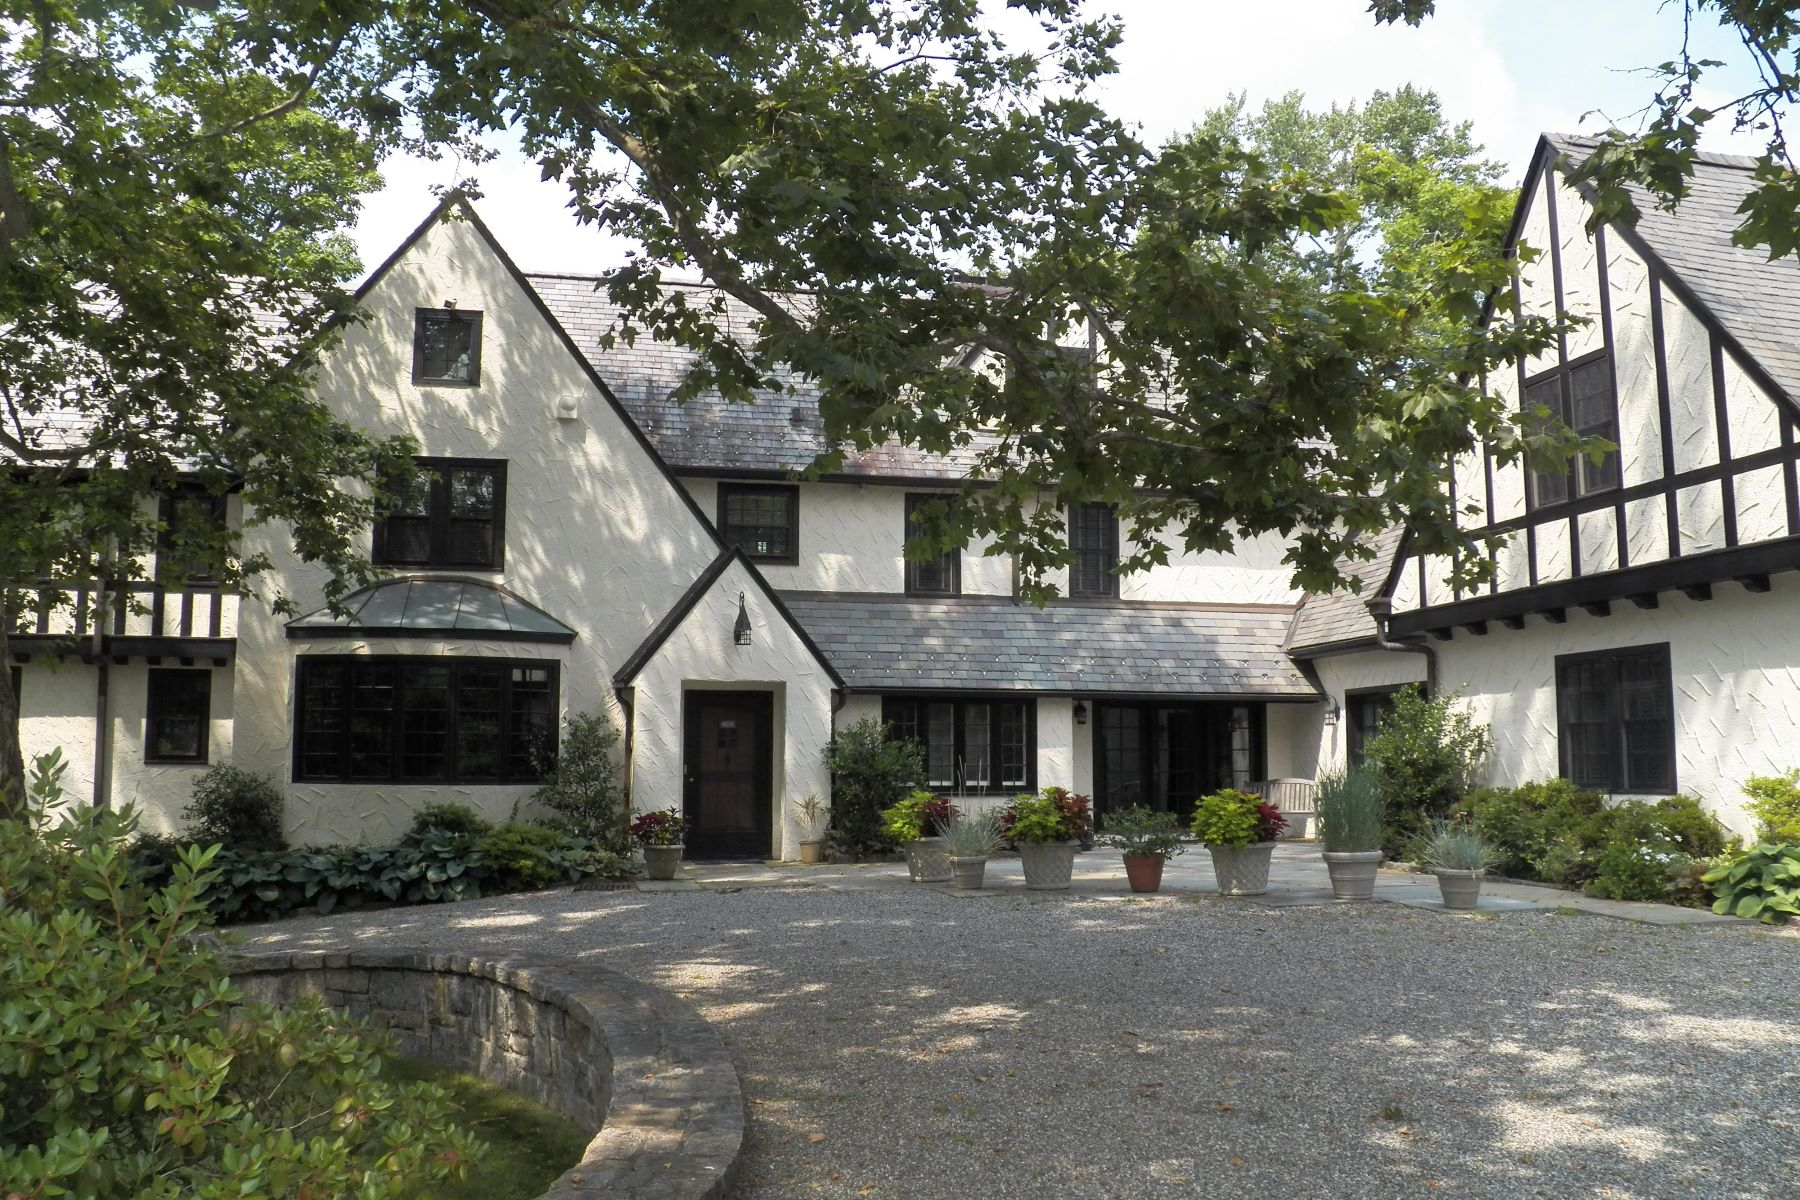 Moradia para Venda às Stunning English Manor Home 72 Mamaroneck Road Scarsdale, Nova York, 10583 Estados Unidos